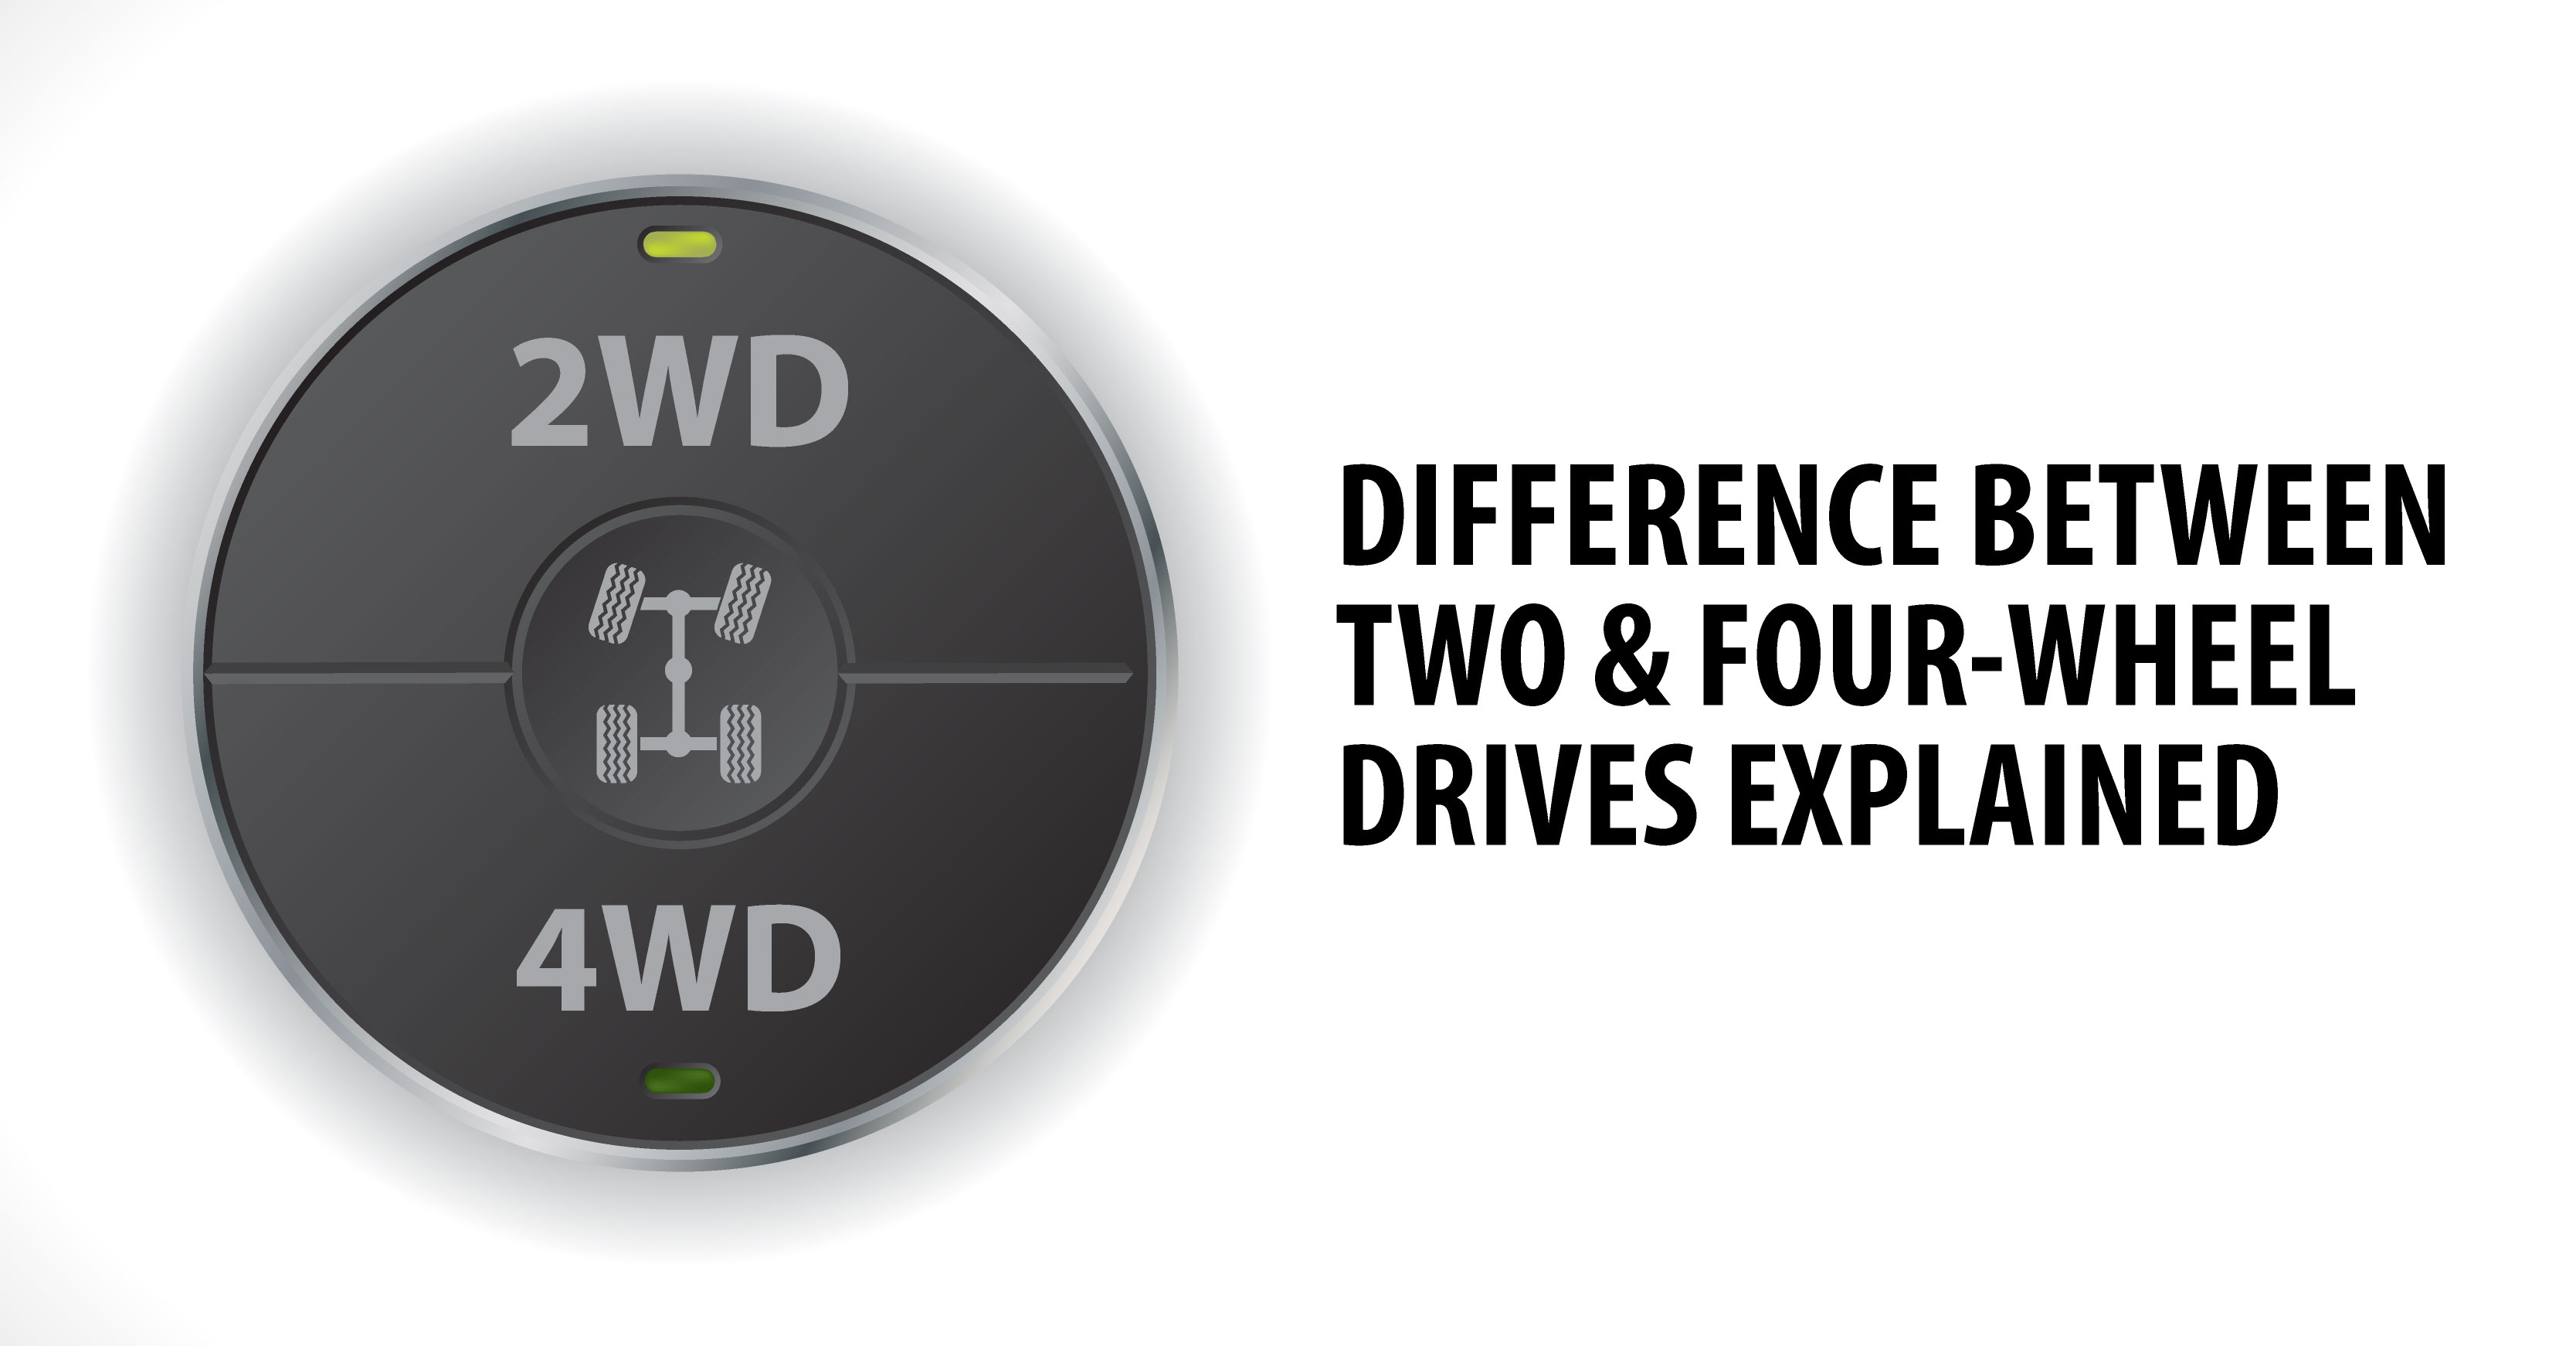 DIFFERENCE BETWEEN TWO & FOUR-WHEEL DRIVES EXPLAINED